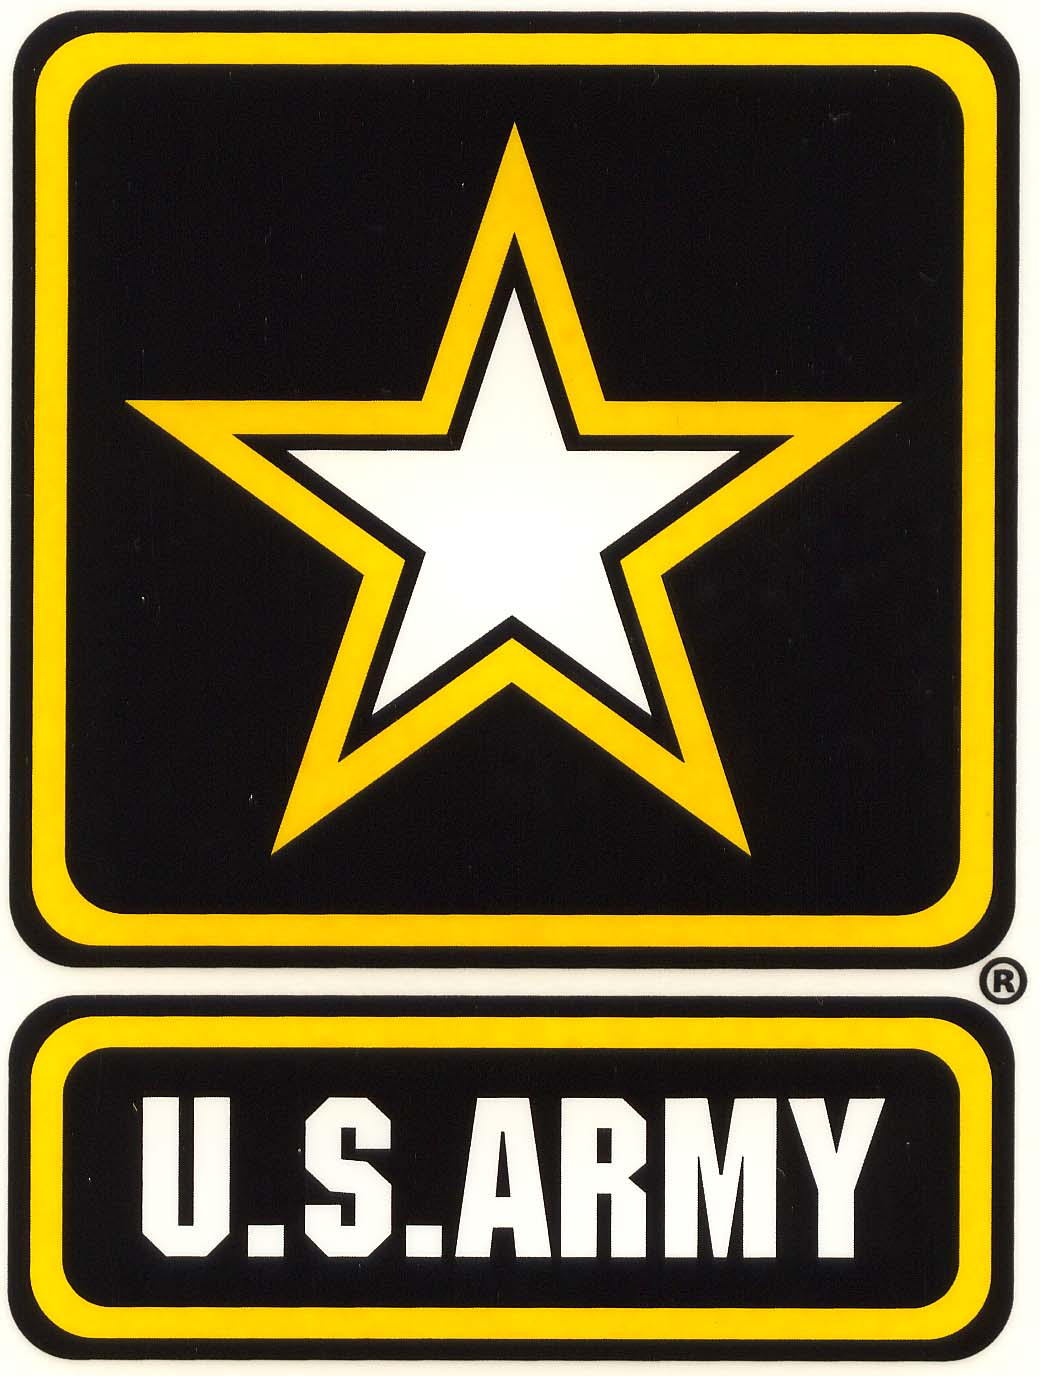 Us Army Logo 10602 Hd Wallpapers in Logos - Imagesci.